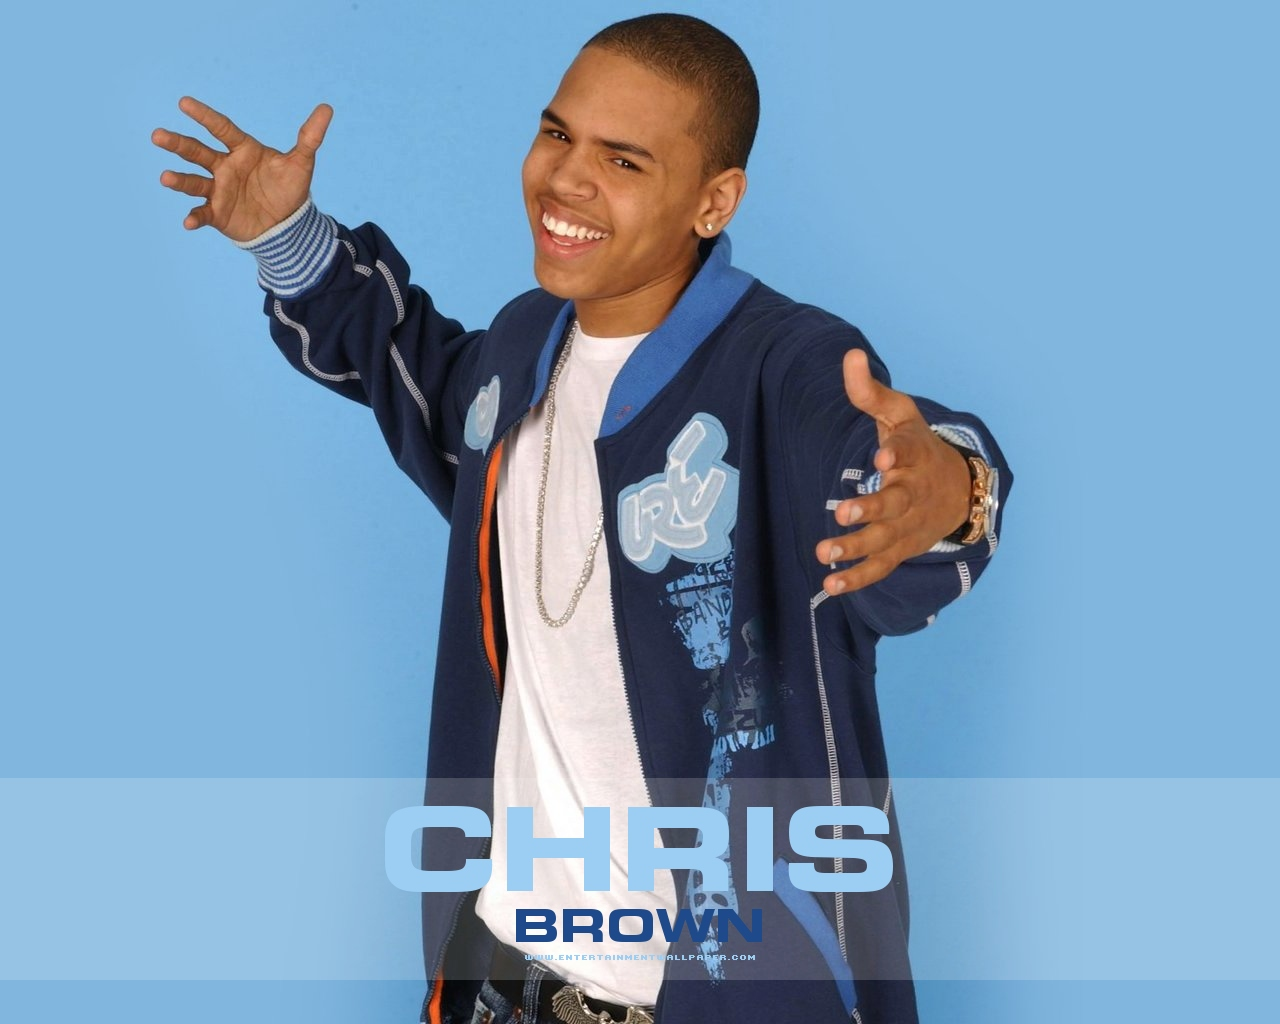 Chris Brown Wallpaper - Original size, download now.